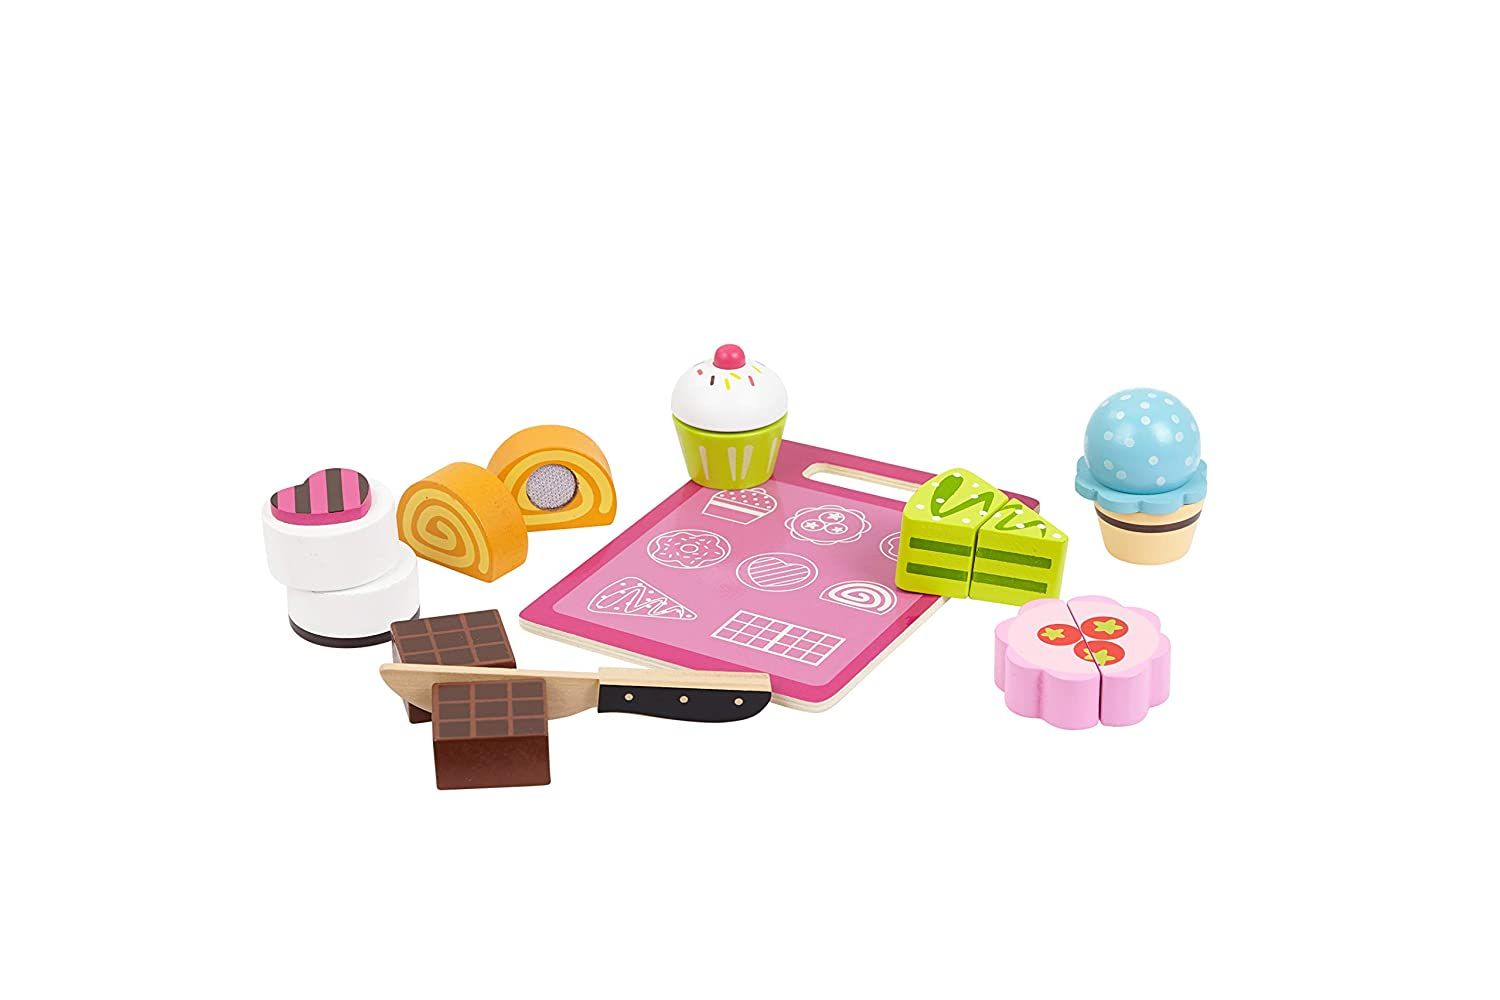 TOYSTERS Wooden Dessert Cutting Play Food Set | Wood Toys for Kids | Premium-Quality Pretend Children Kitchen Cooking Playset | Learning Resources for Toddlers | AT610